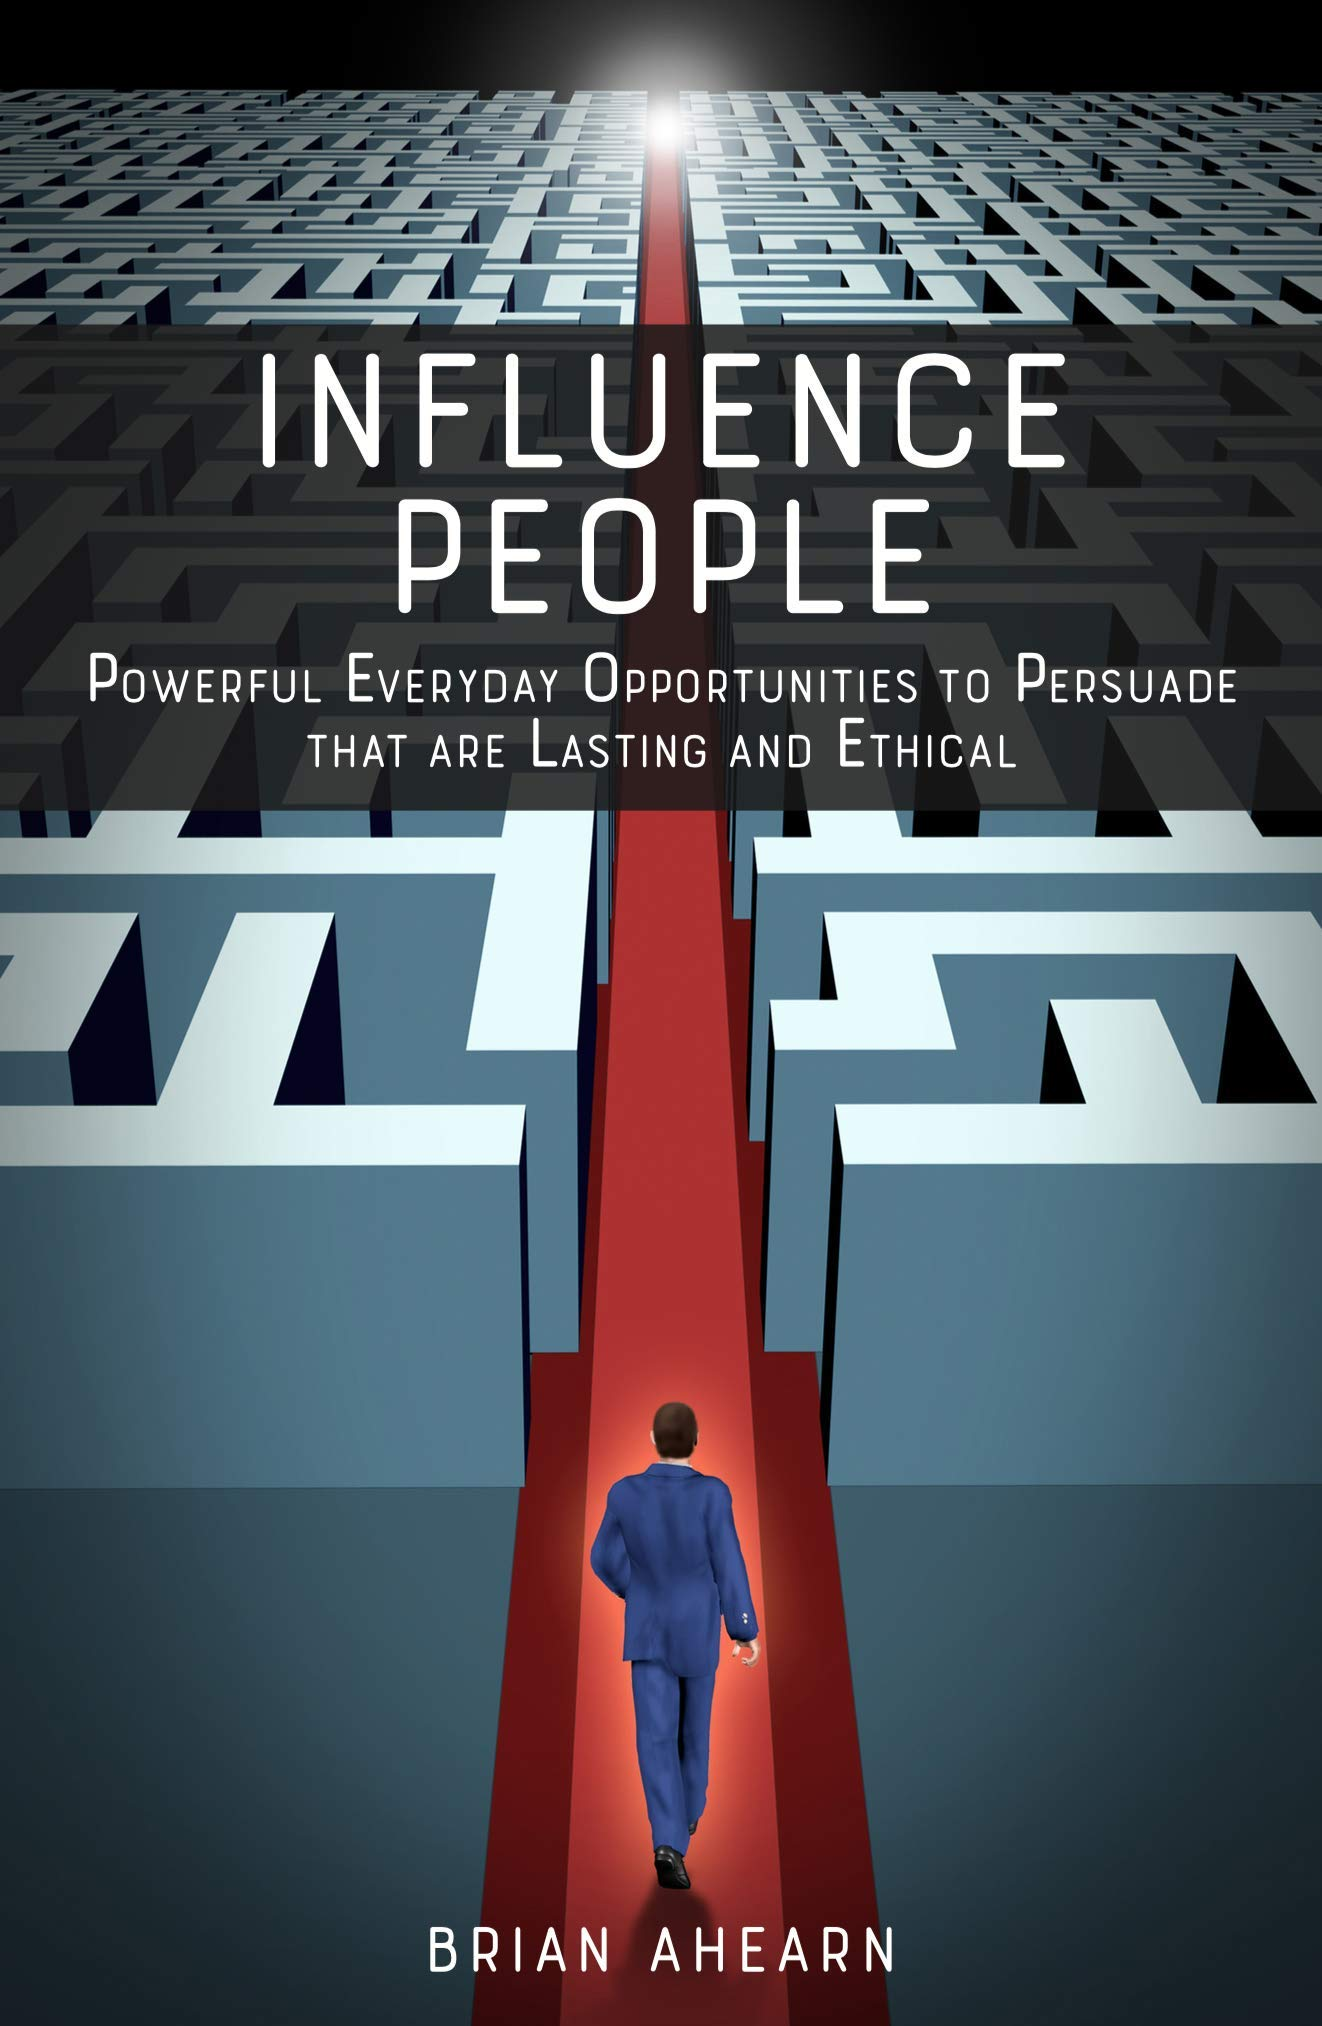 Image OfInfluence PEOPLE: Powerful Everyday Opportunities To Persuade That Are Lasting And Ethical